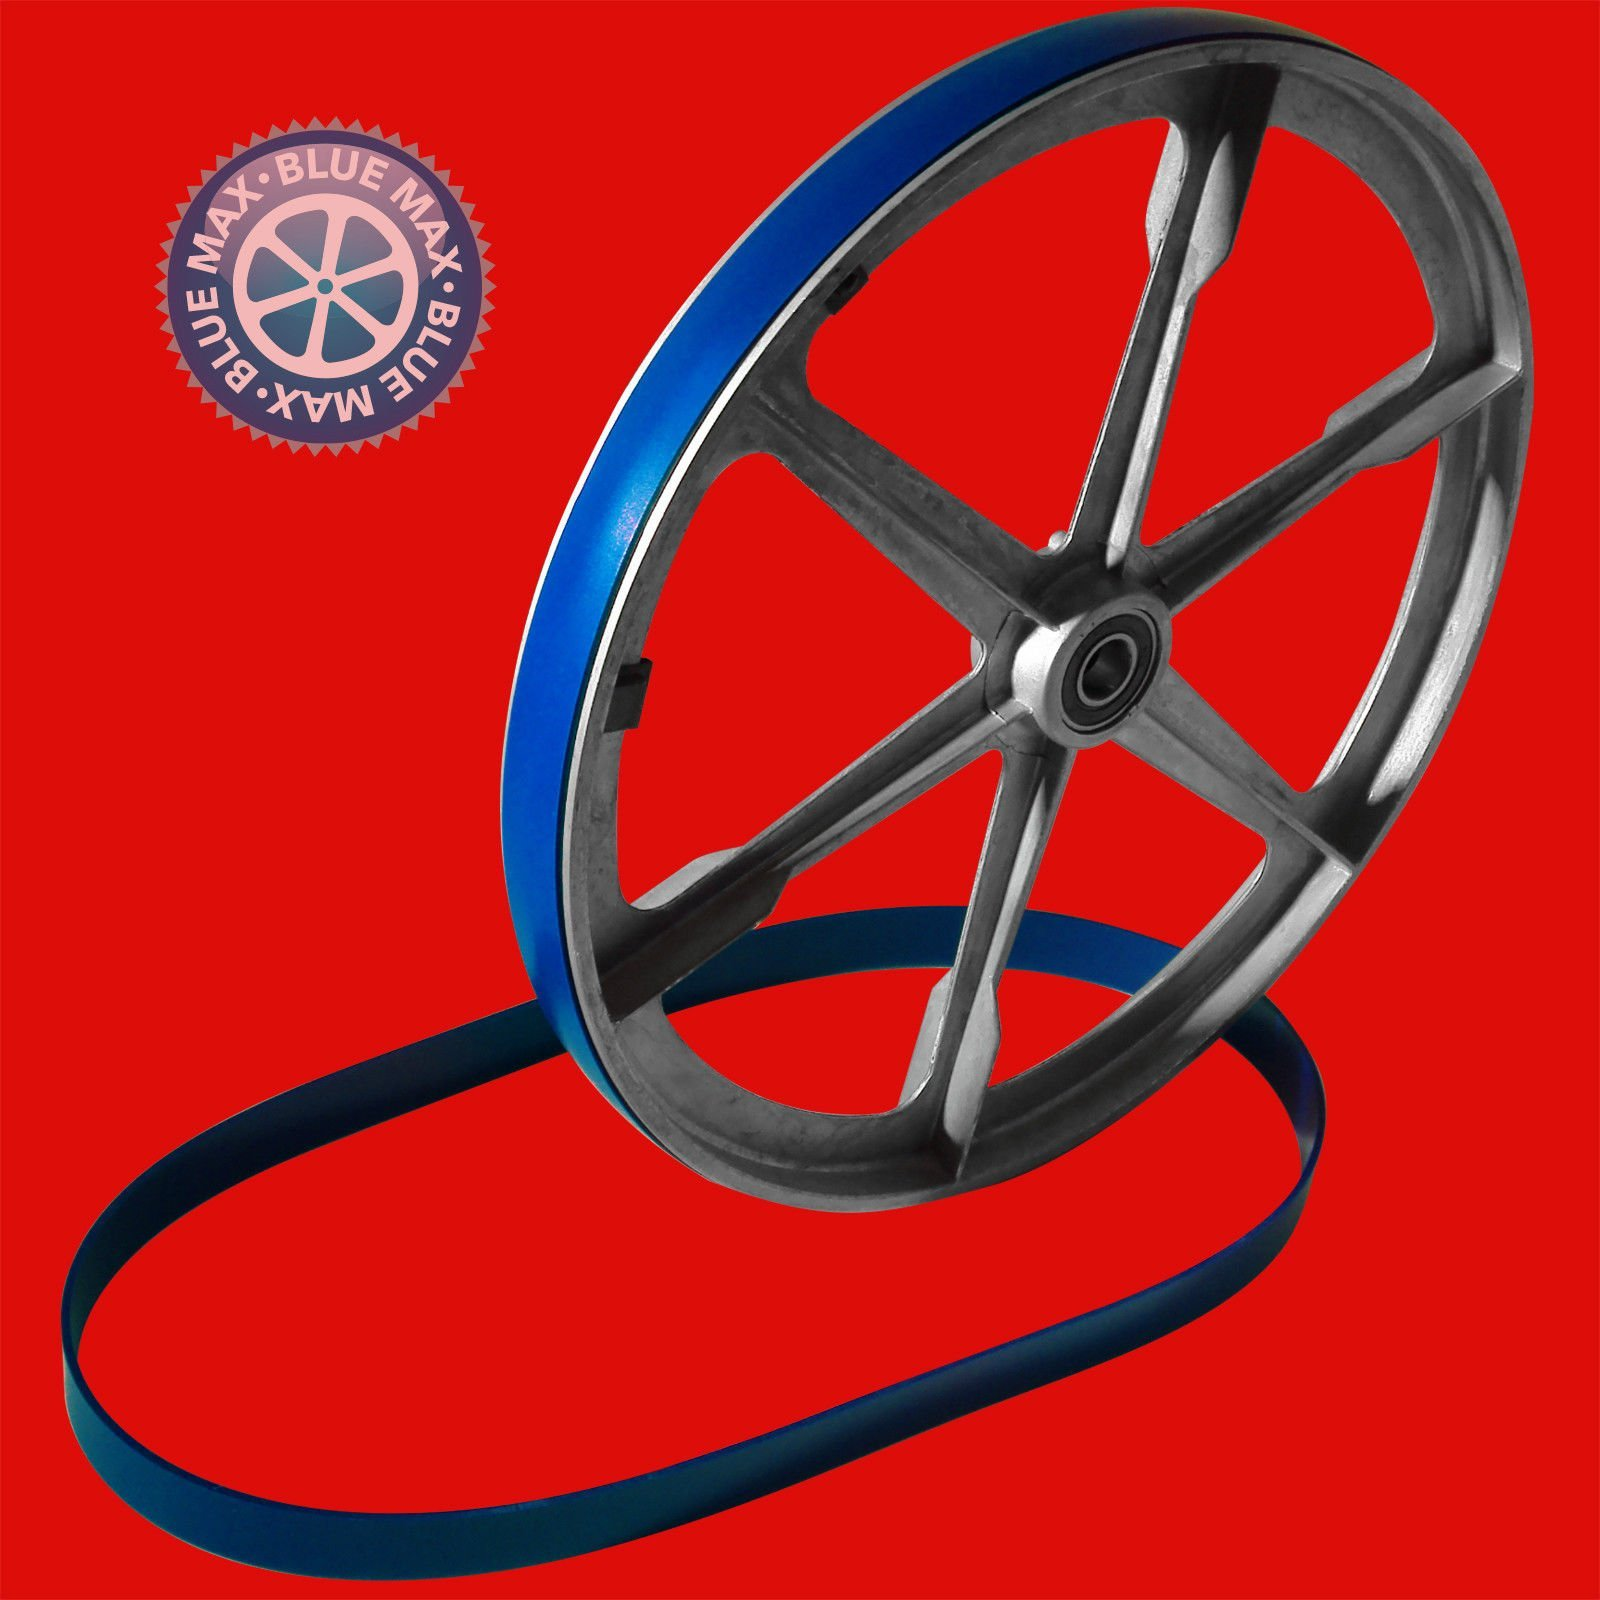 New Heavy Duty Band Saw Urethane 2 Blue Max Tire Set ULTRA FOR 9'' SKIL 3386 BAND SAW